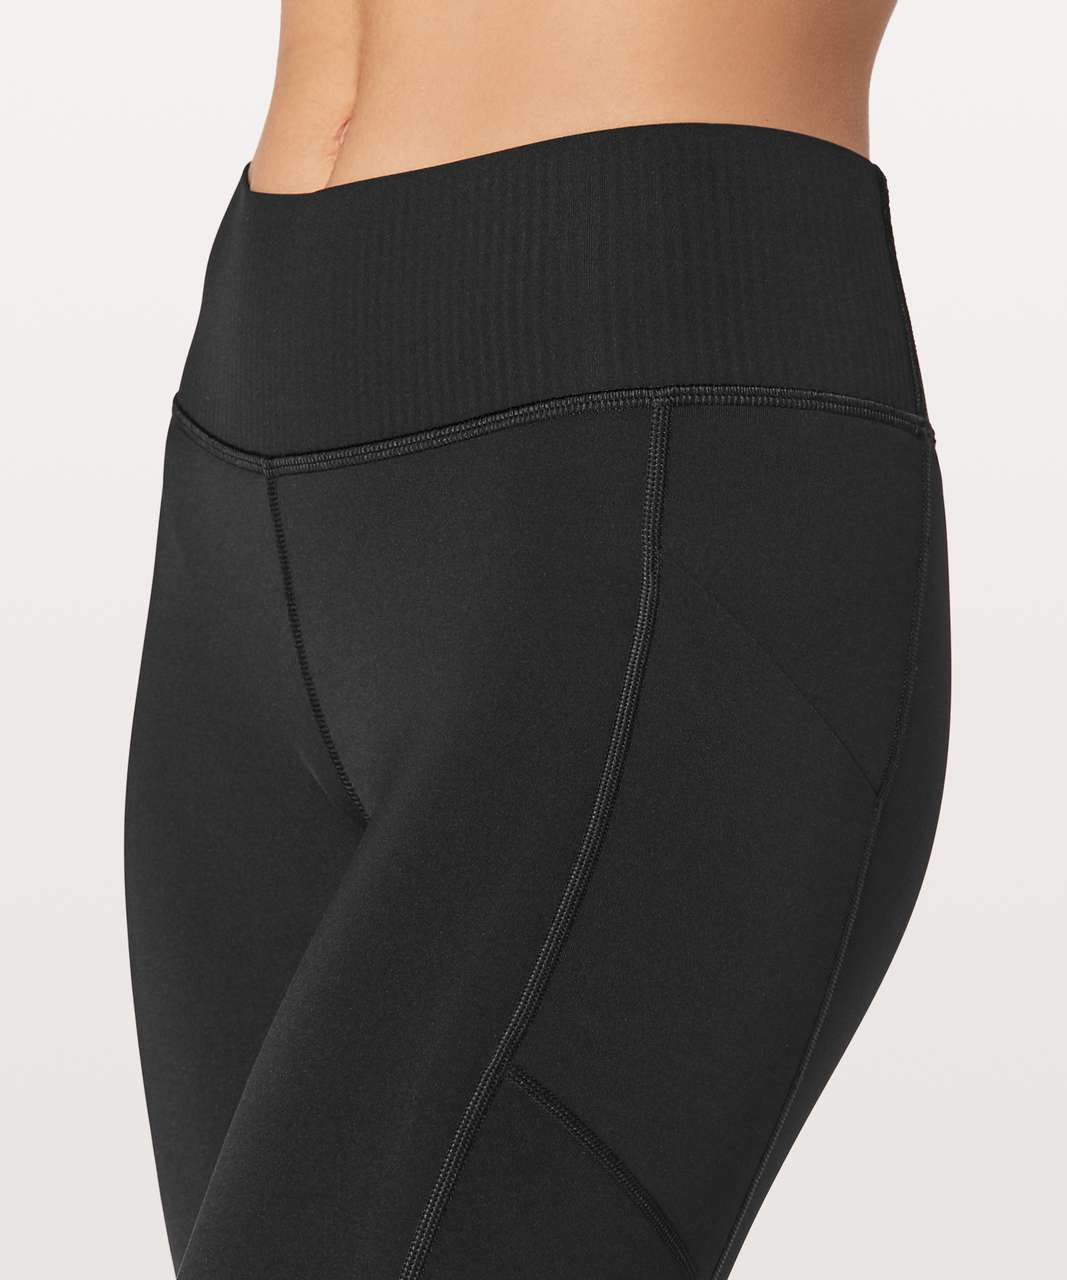 "Lululemon Keep Your Form Tight 25"" - Black"